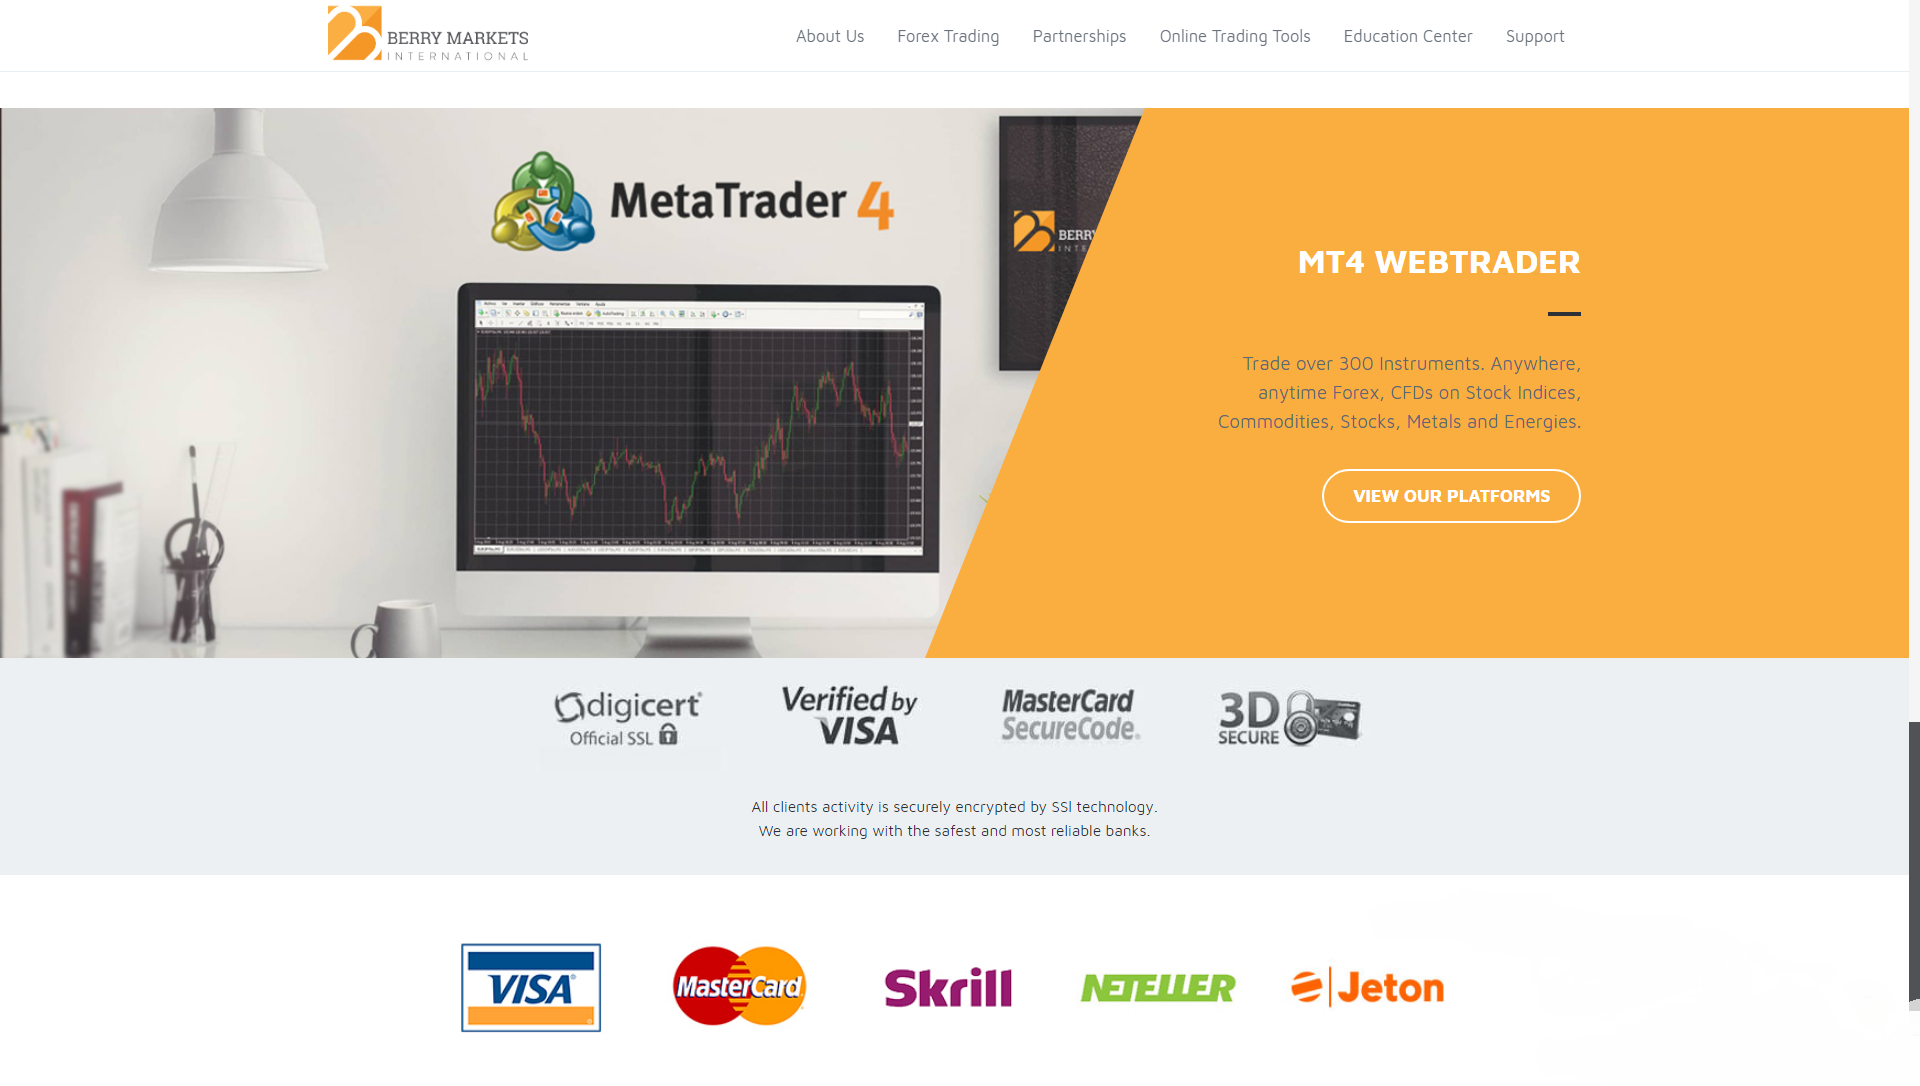 berry markets metatrader